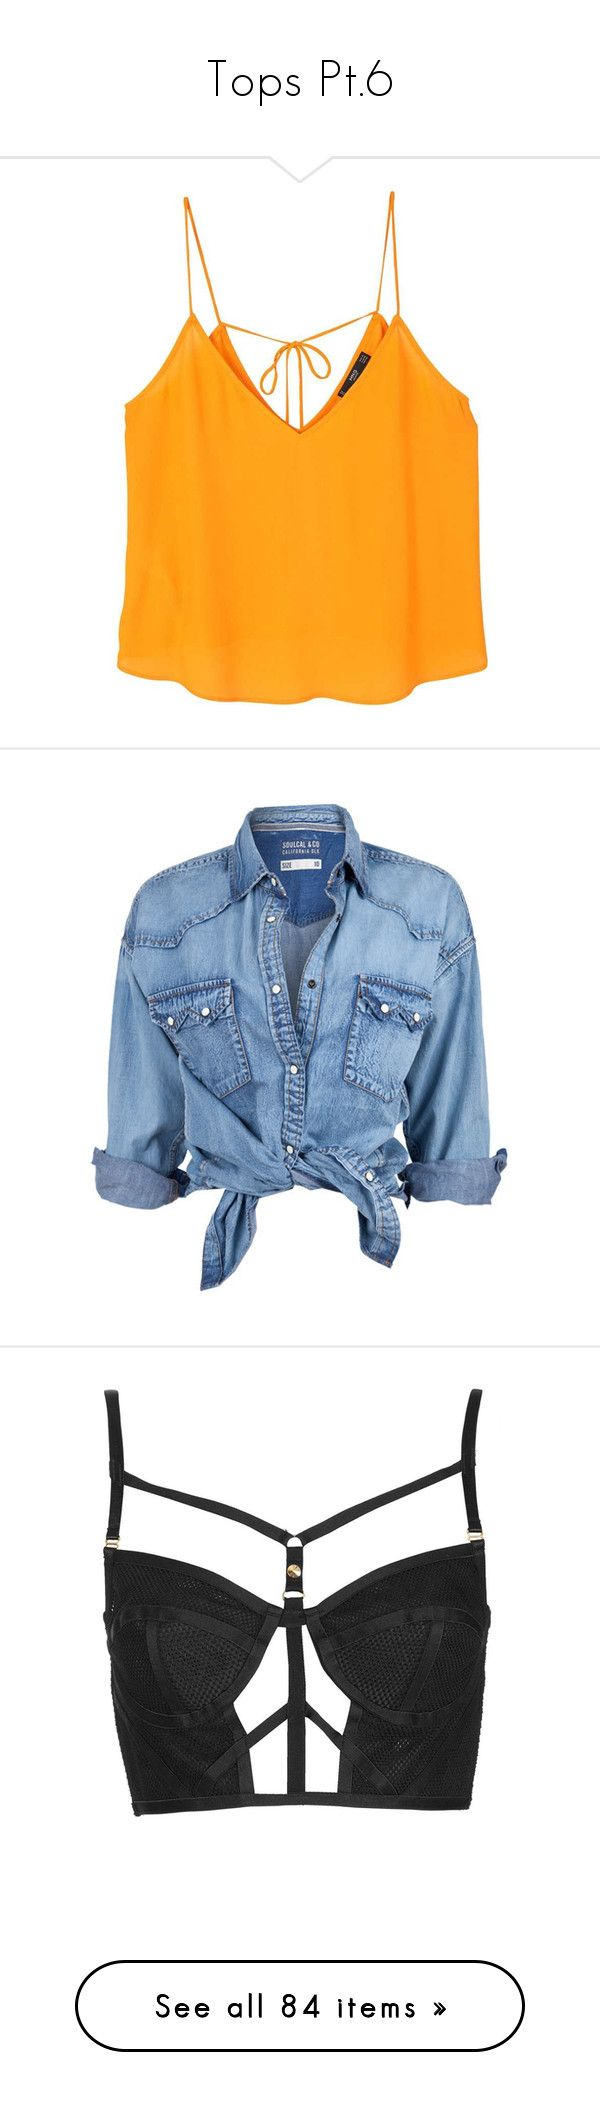 """""""Tops Pt.6"""" by brook-s18 ❤ liked on Polyvore featuring tops, shirts, crop top, blusas, v neck tops, strappy crop top, bow crop top, cut-out crop tops, jackets and blue denim shirt"""